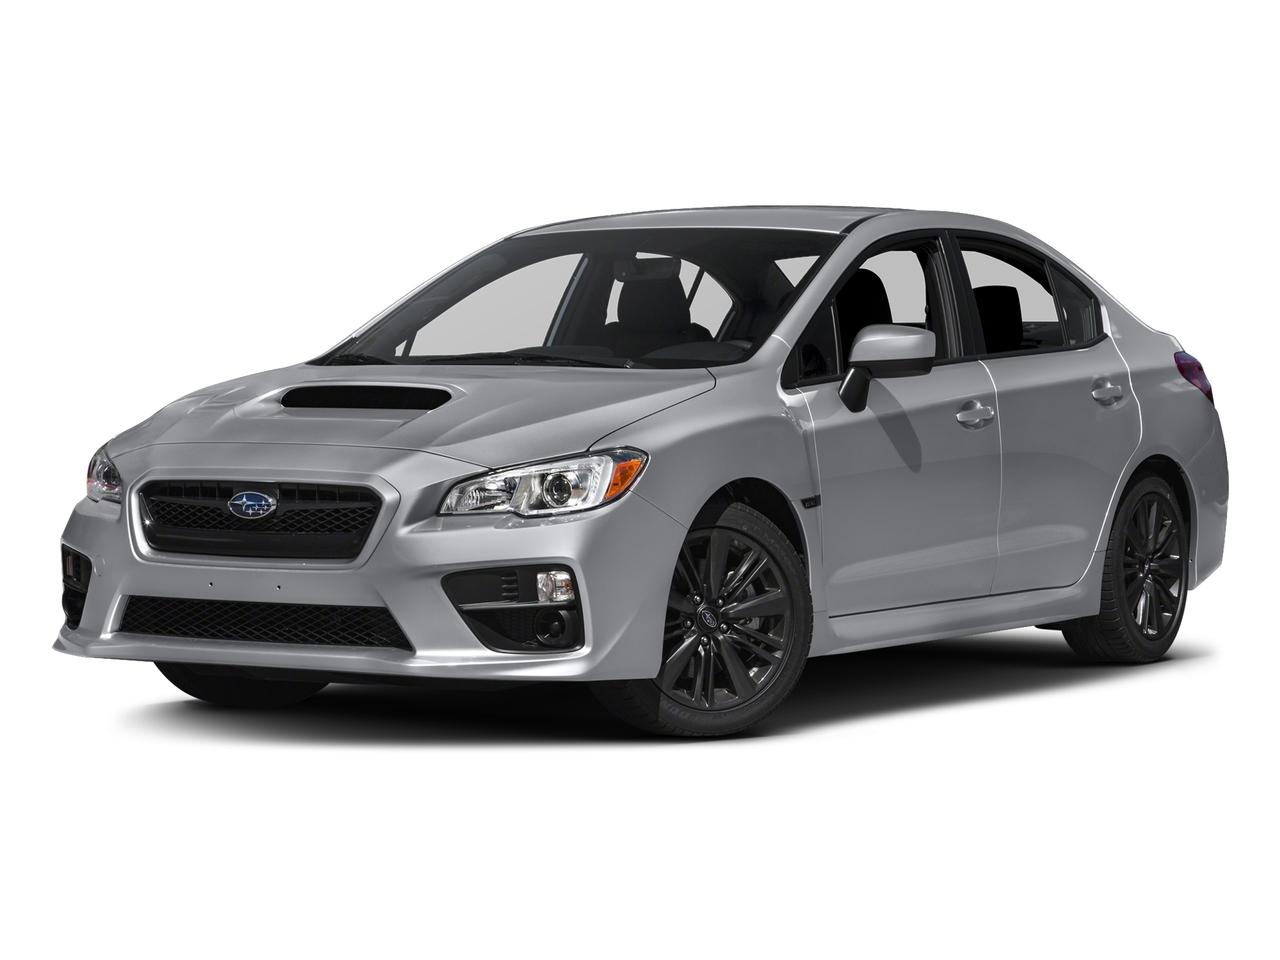 2017 Subaru WRX Vehicle Photo in Spokane, WA 99207